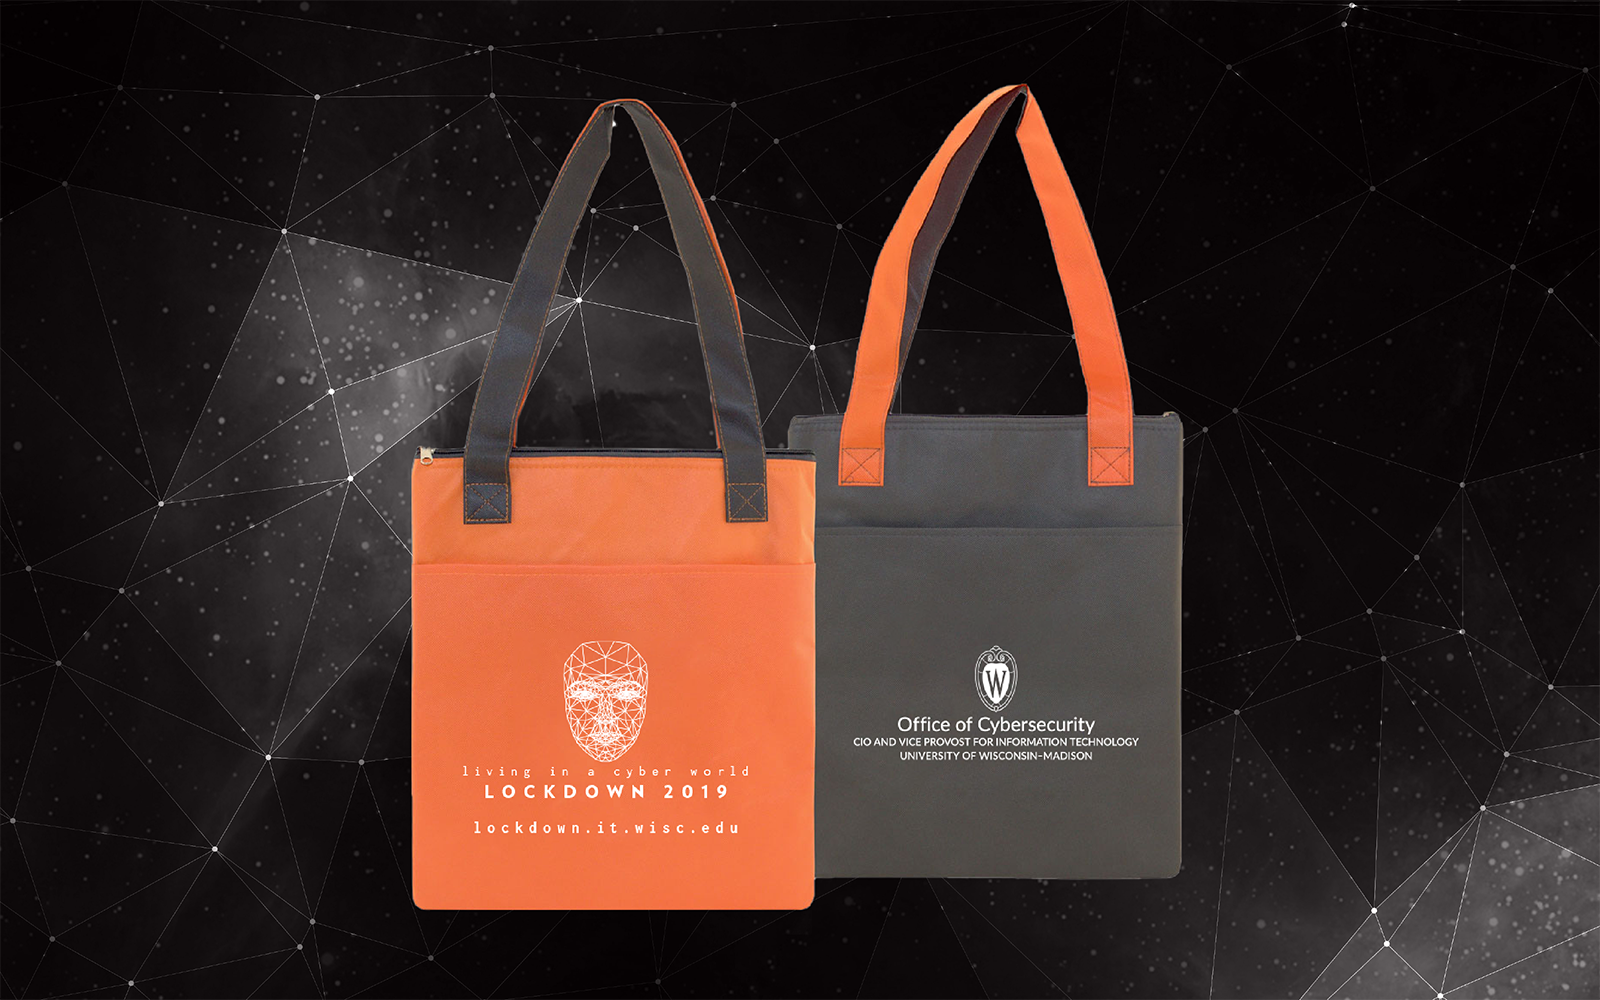 Lockdown logo on an orange and gray tote